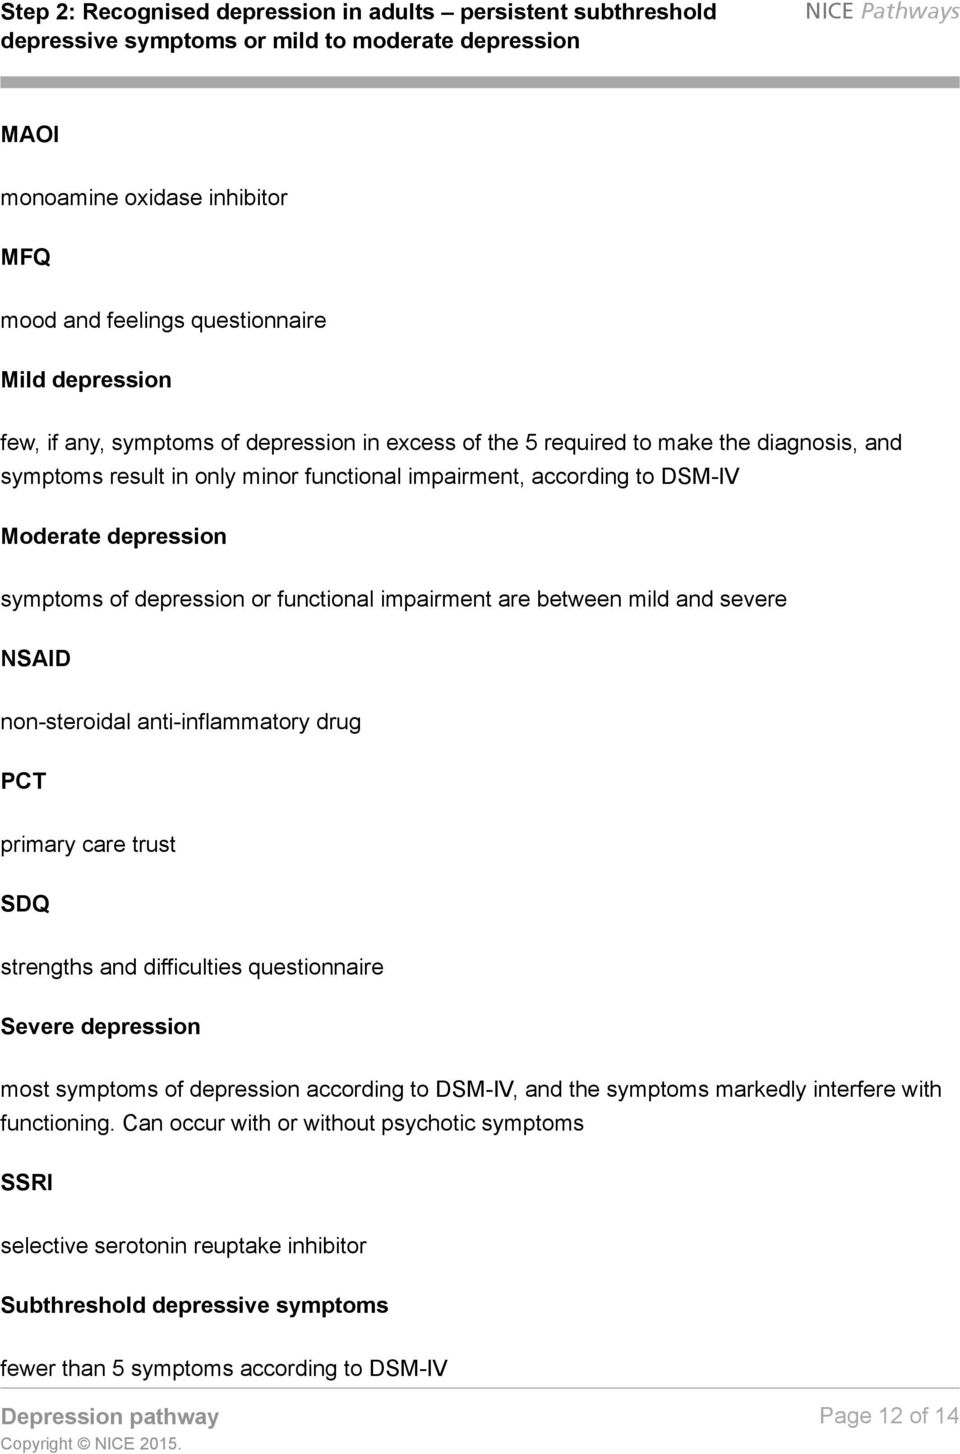 anti-inflammatory drug PCT primary care trust SDQ strengths and difficulties questionnaire Severe depression most symptoms of depression according to DSM-IV, and the symptoms markedly